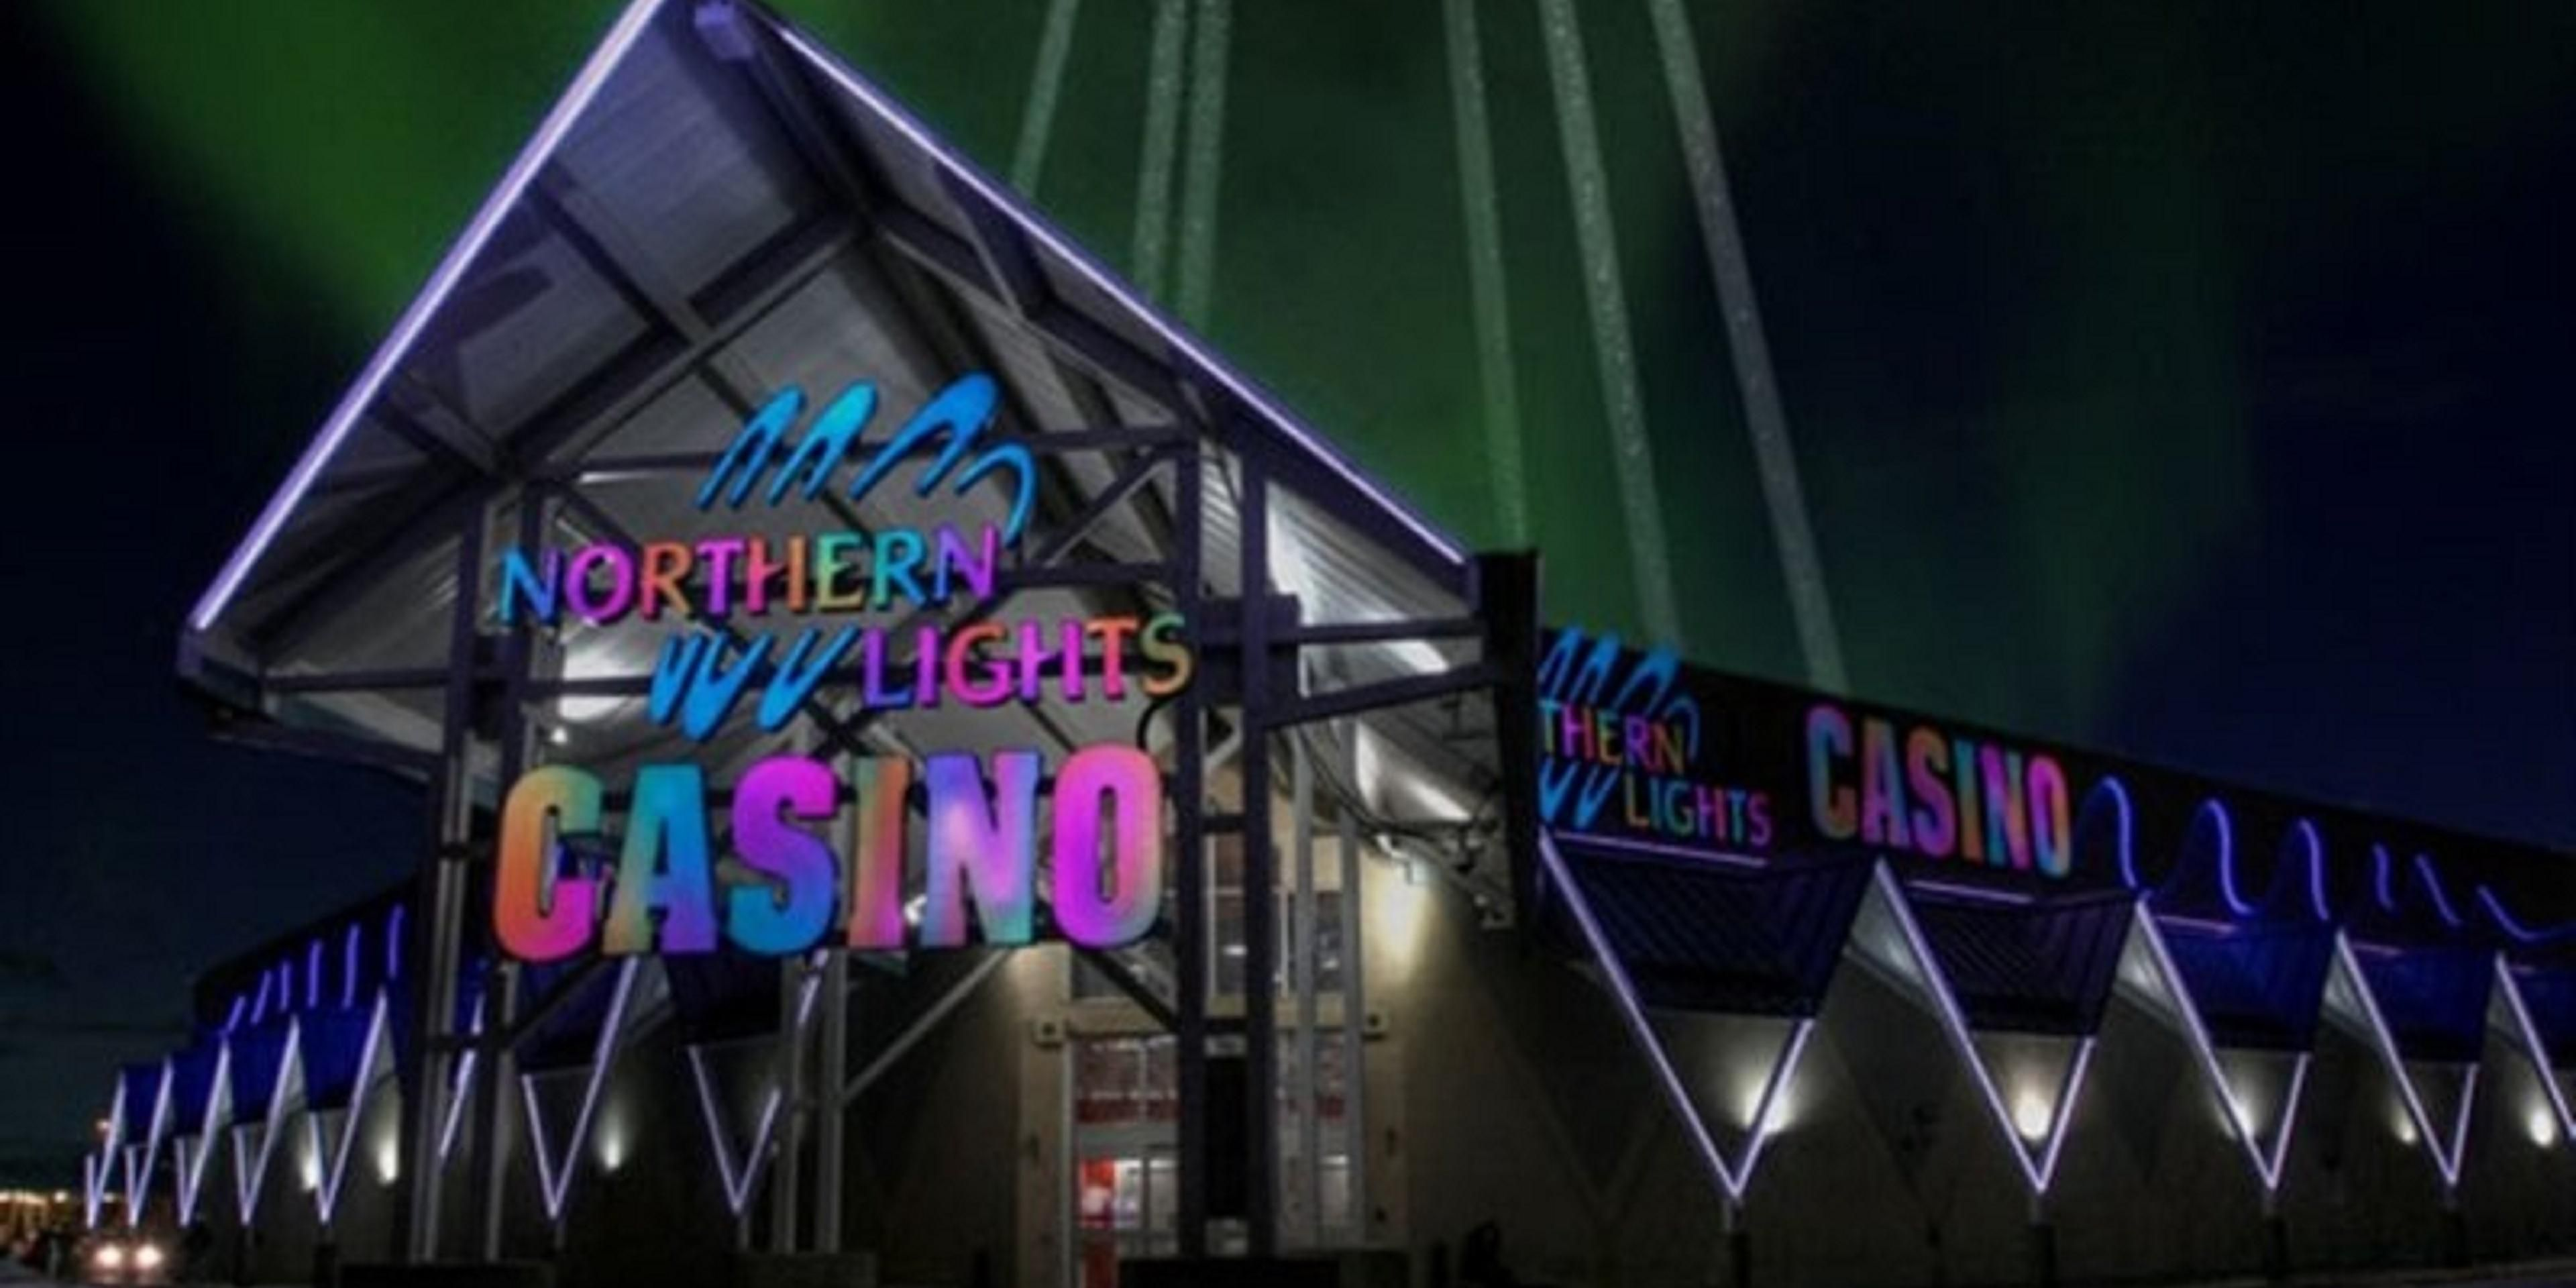 ... Northern Lights Casino 1 Minute From The Hotel ...